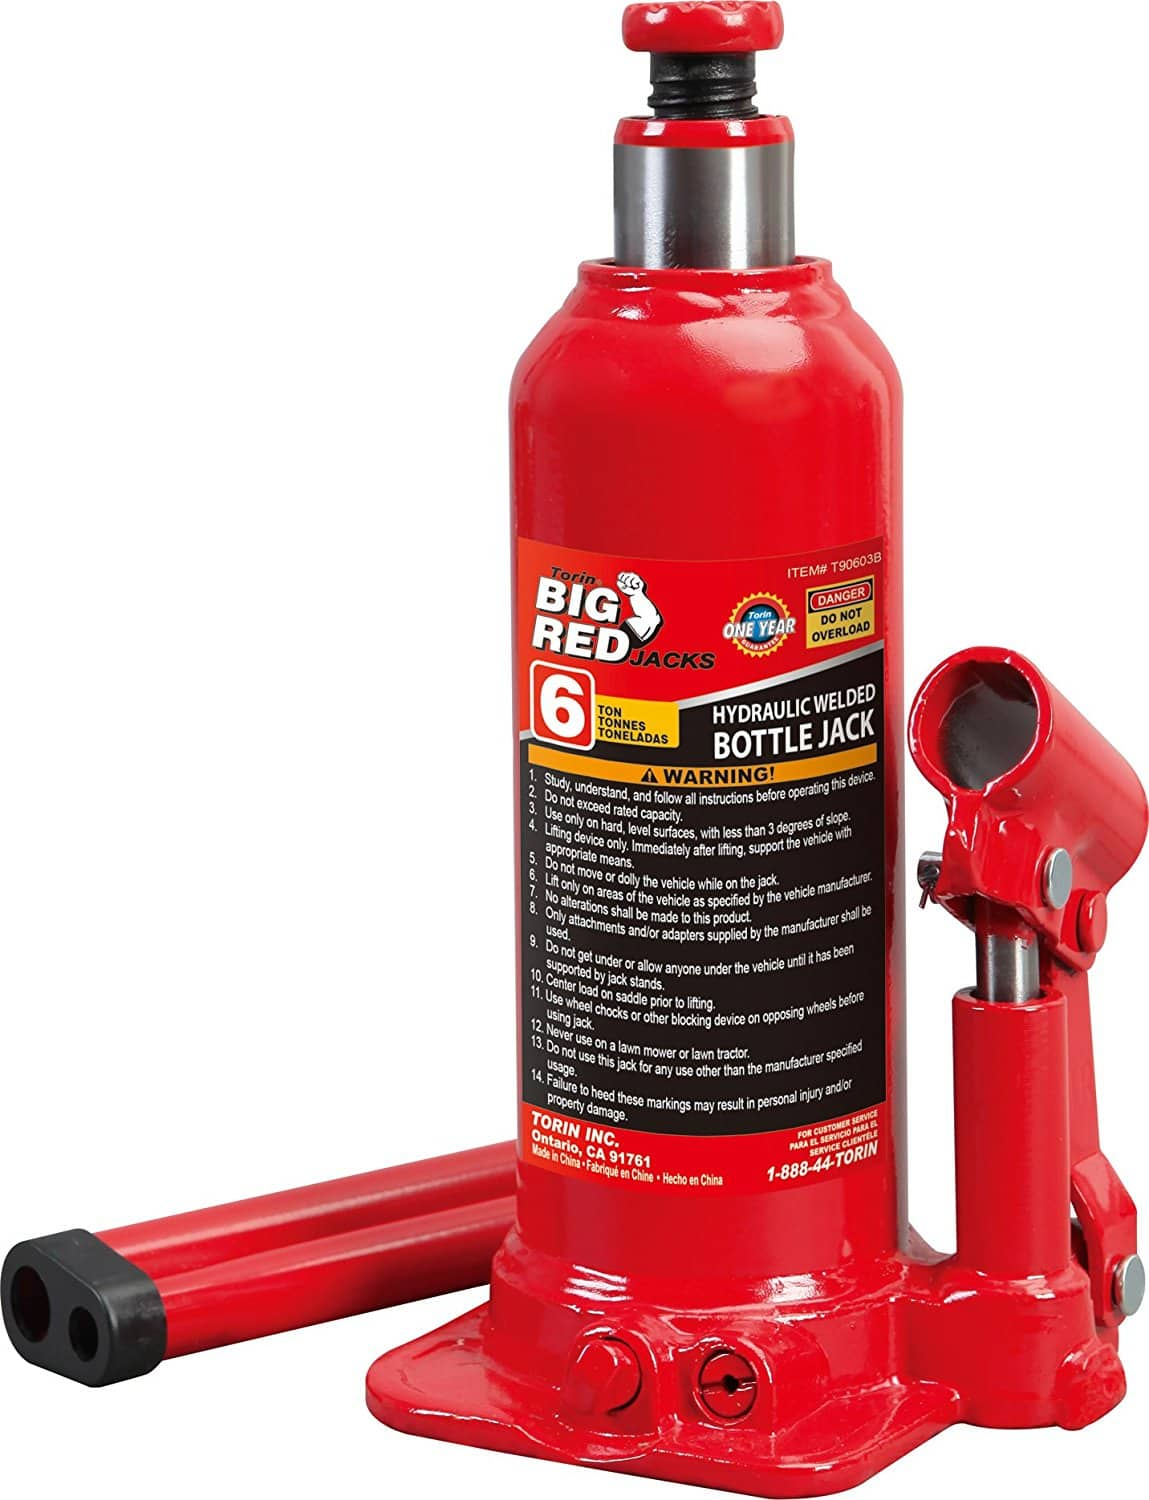 Torin Bottle Jack 20 Ton Capacity on sale 29.98 free shipping for prime members.